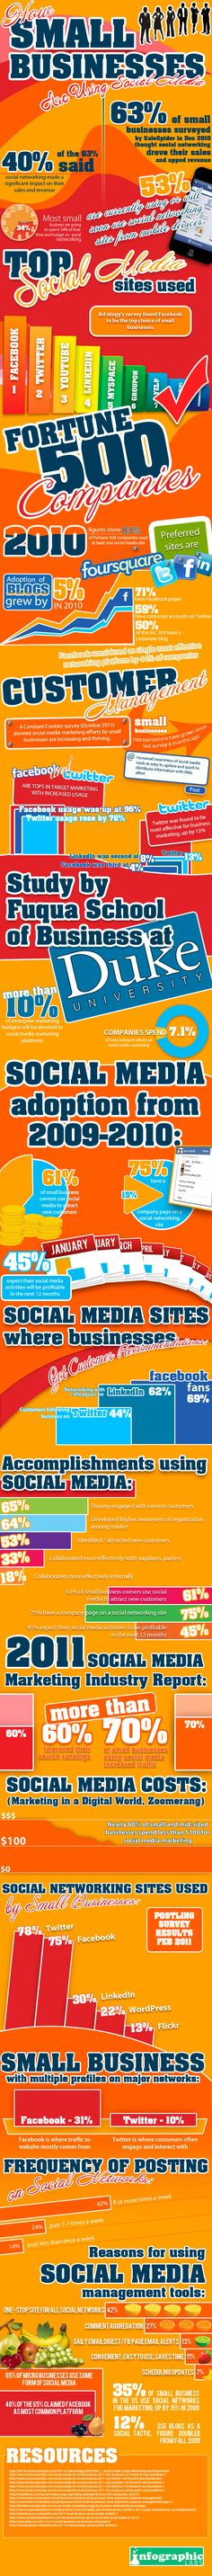 How Small Business Is Using Social Media 2012.